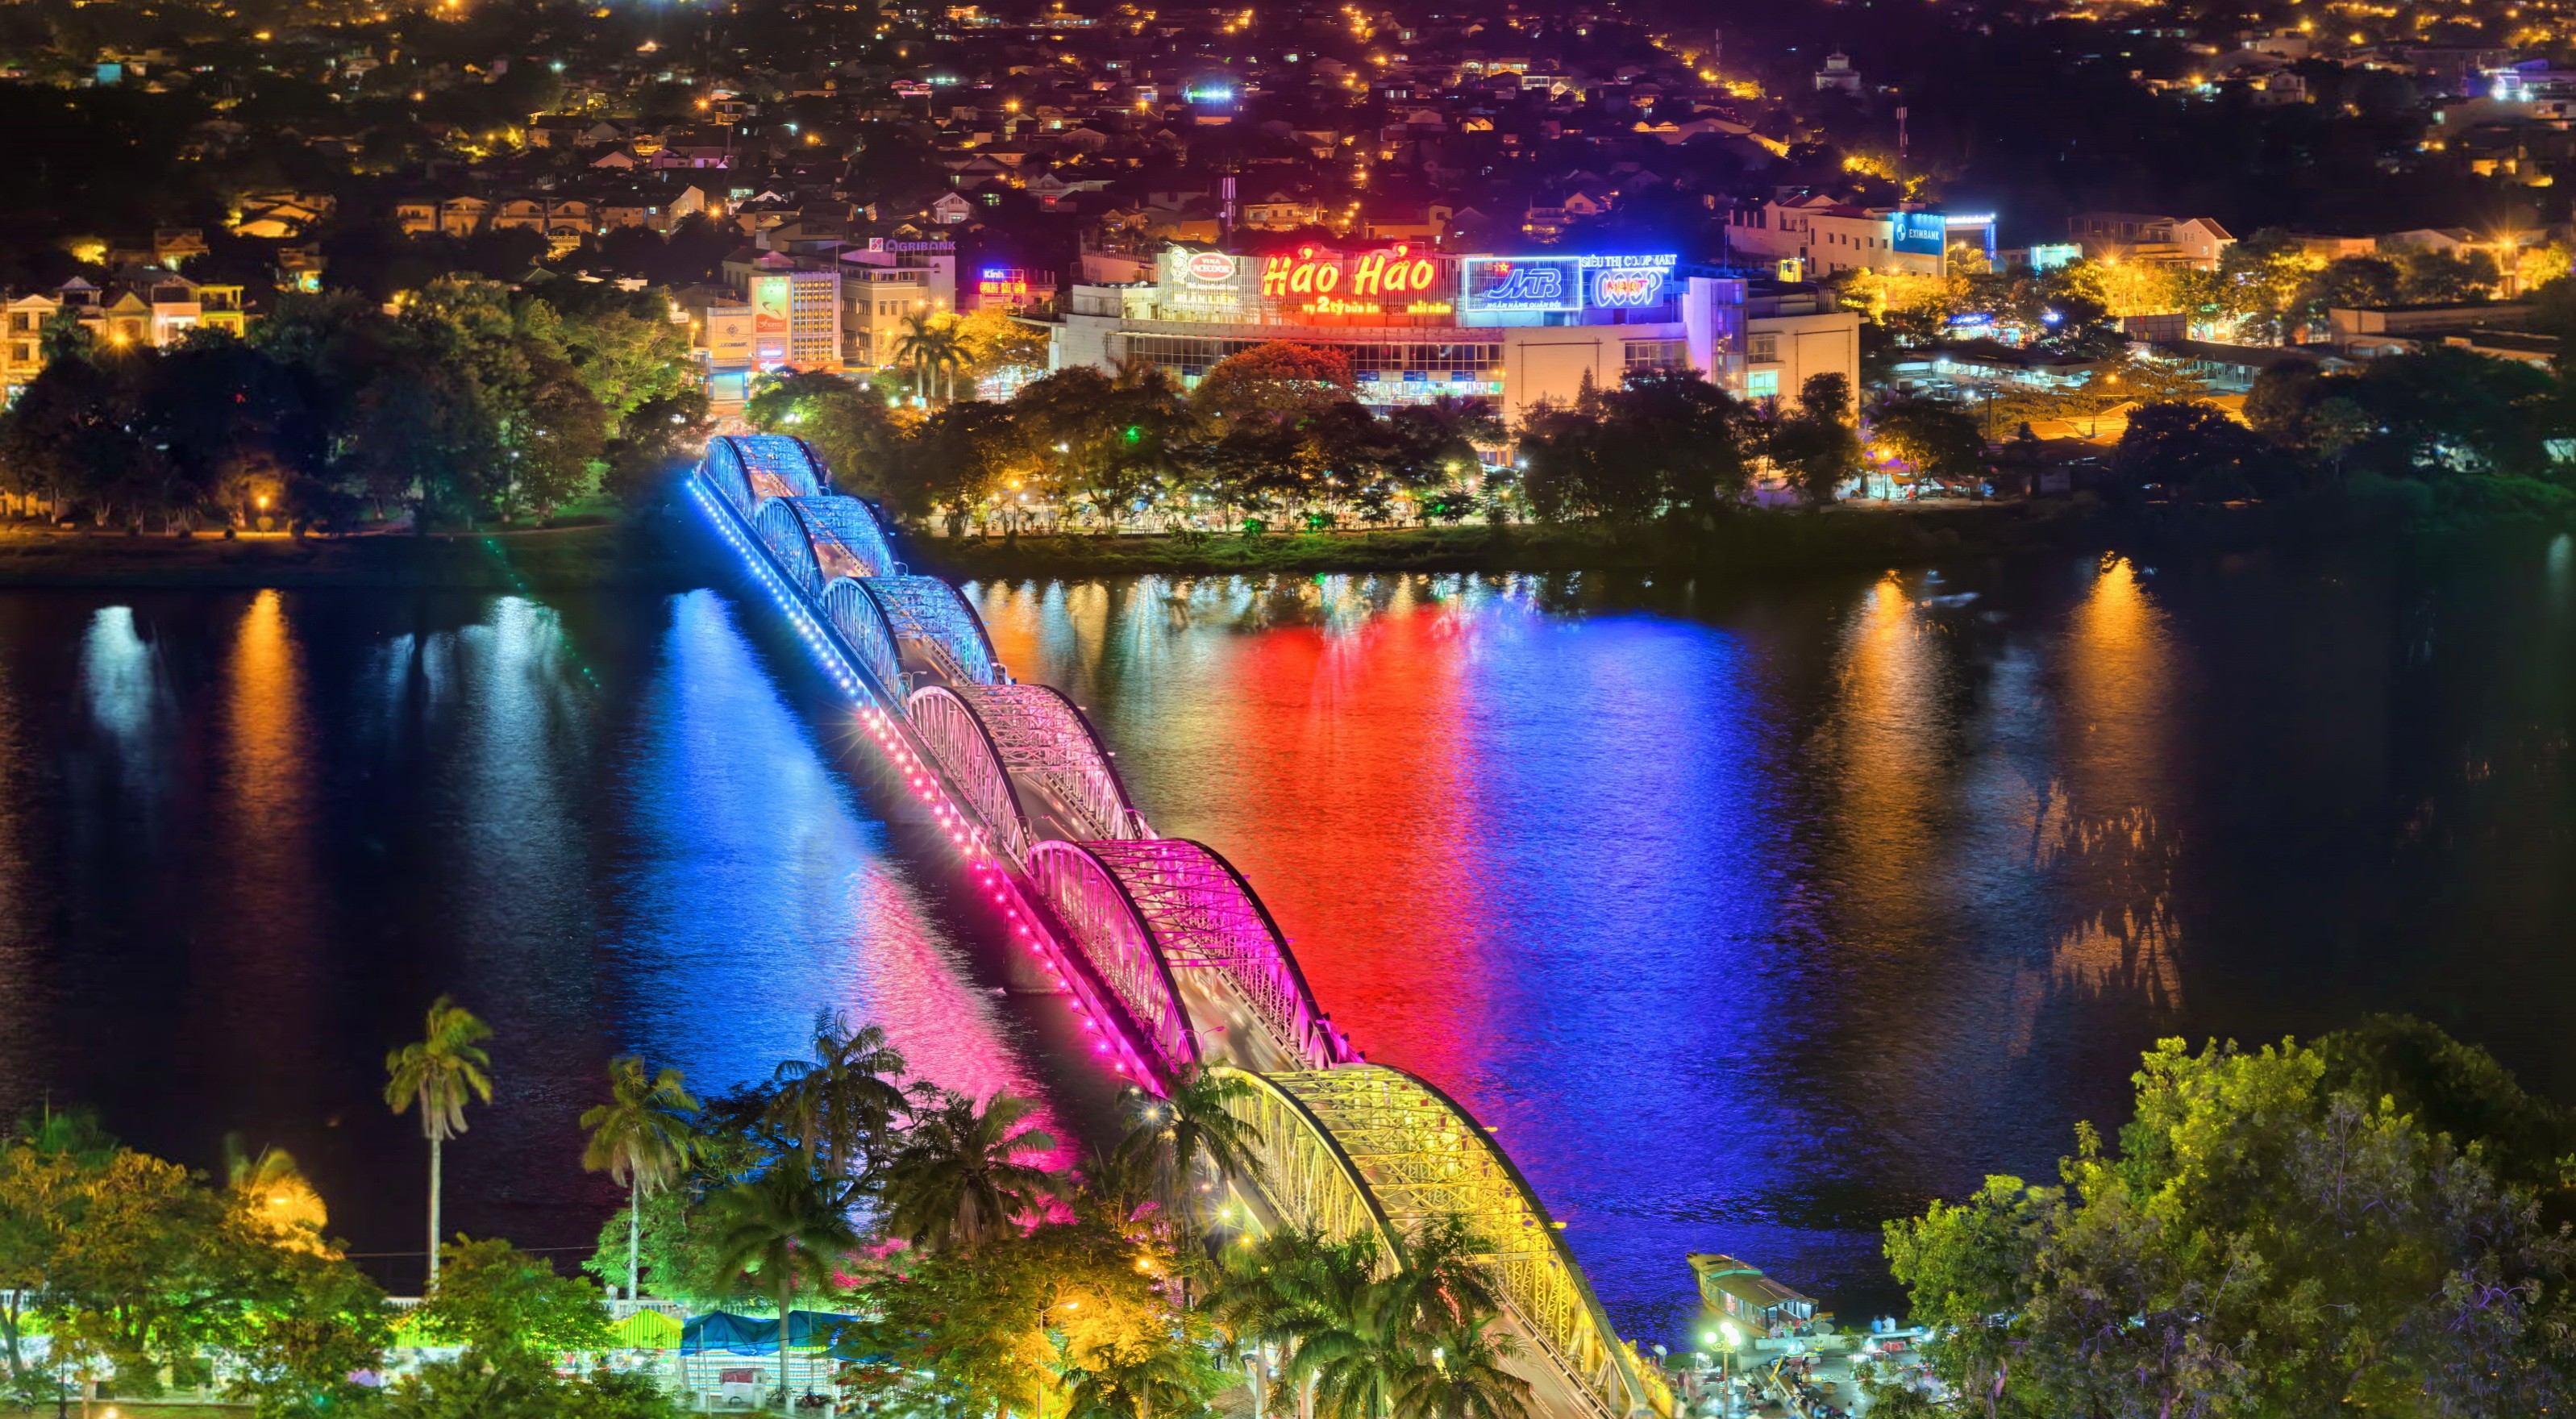 colors-lighting-up-the-huong-river-by-night-makes-the-surrounding-areas-crowded-saigon-riders